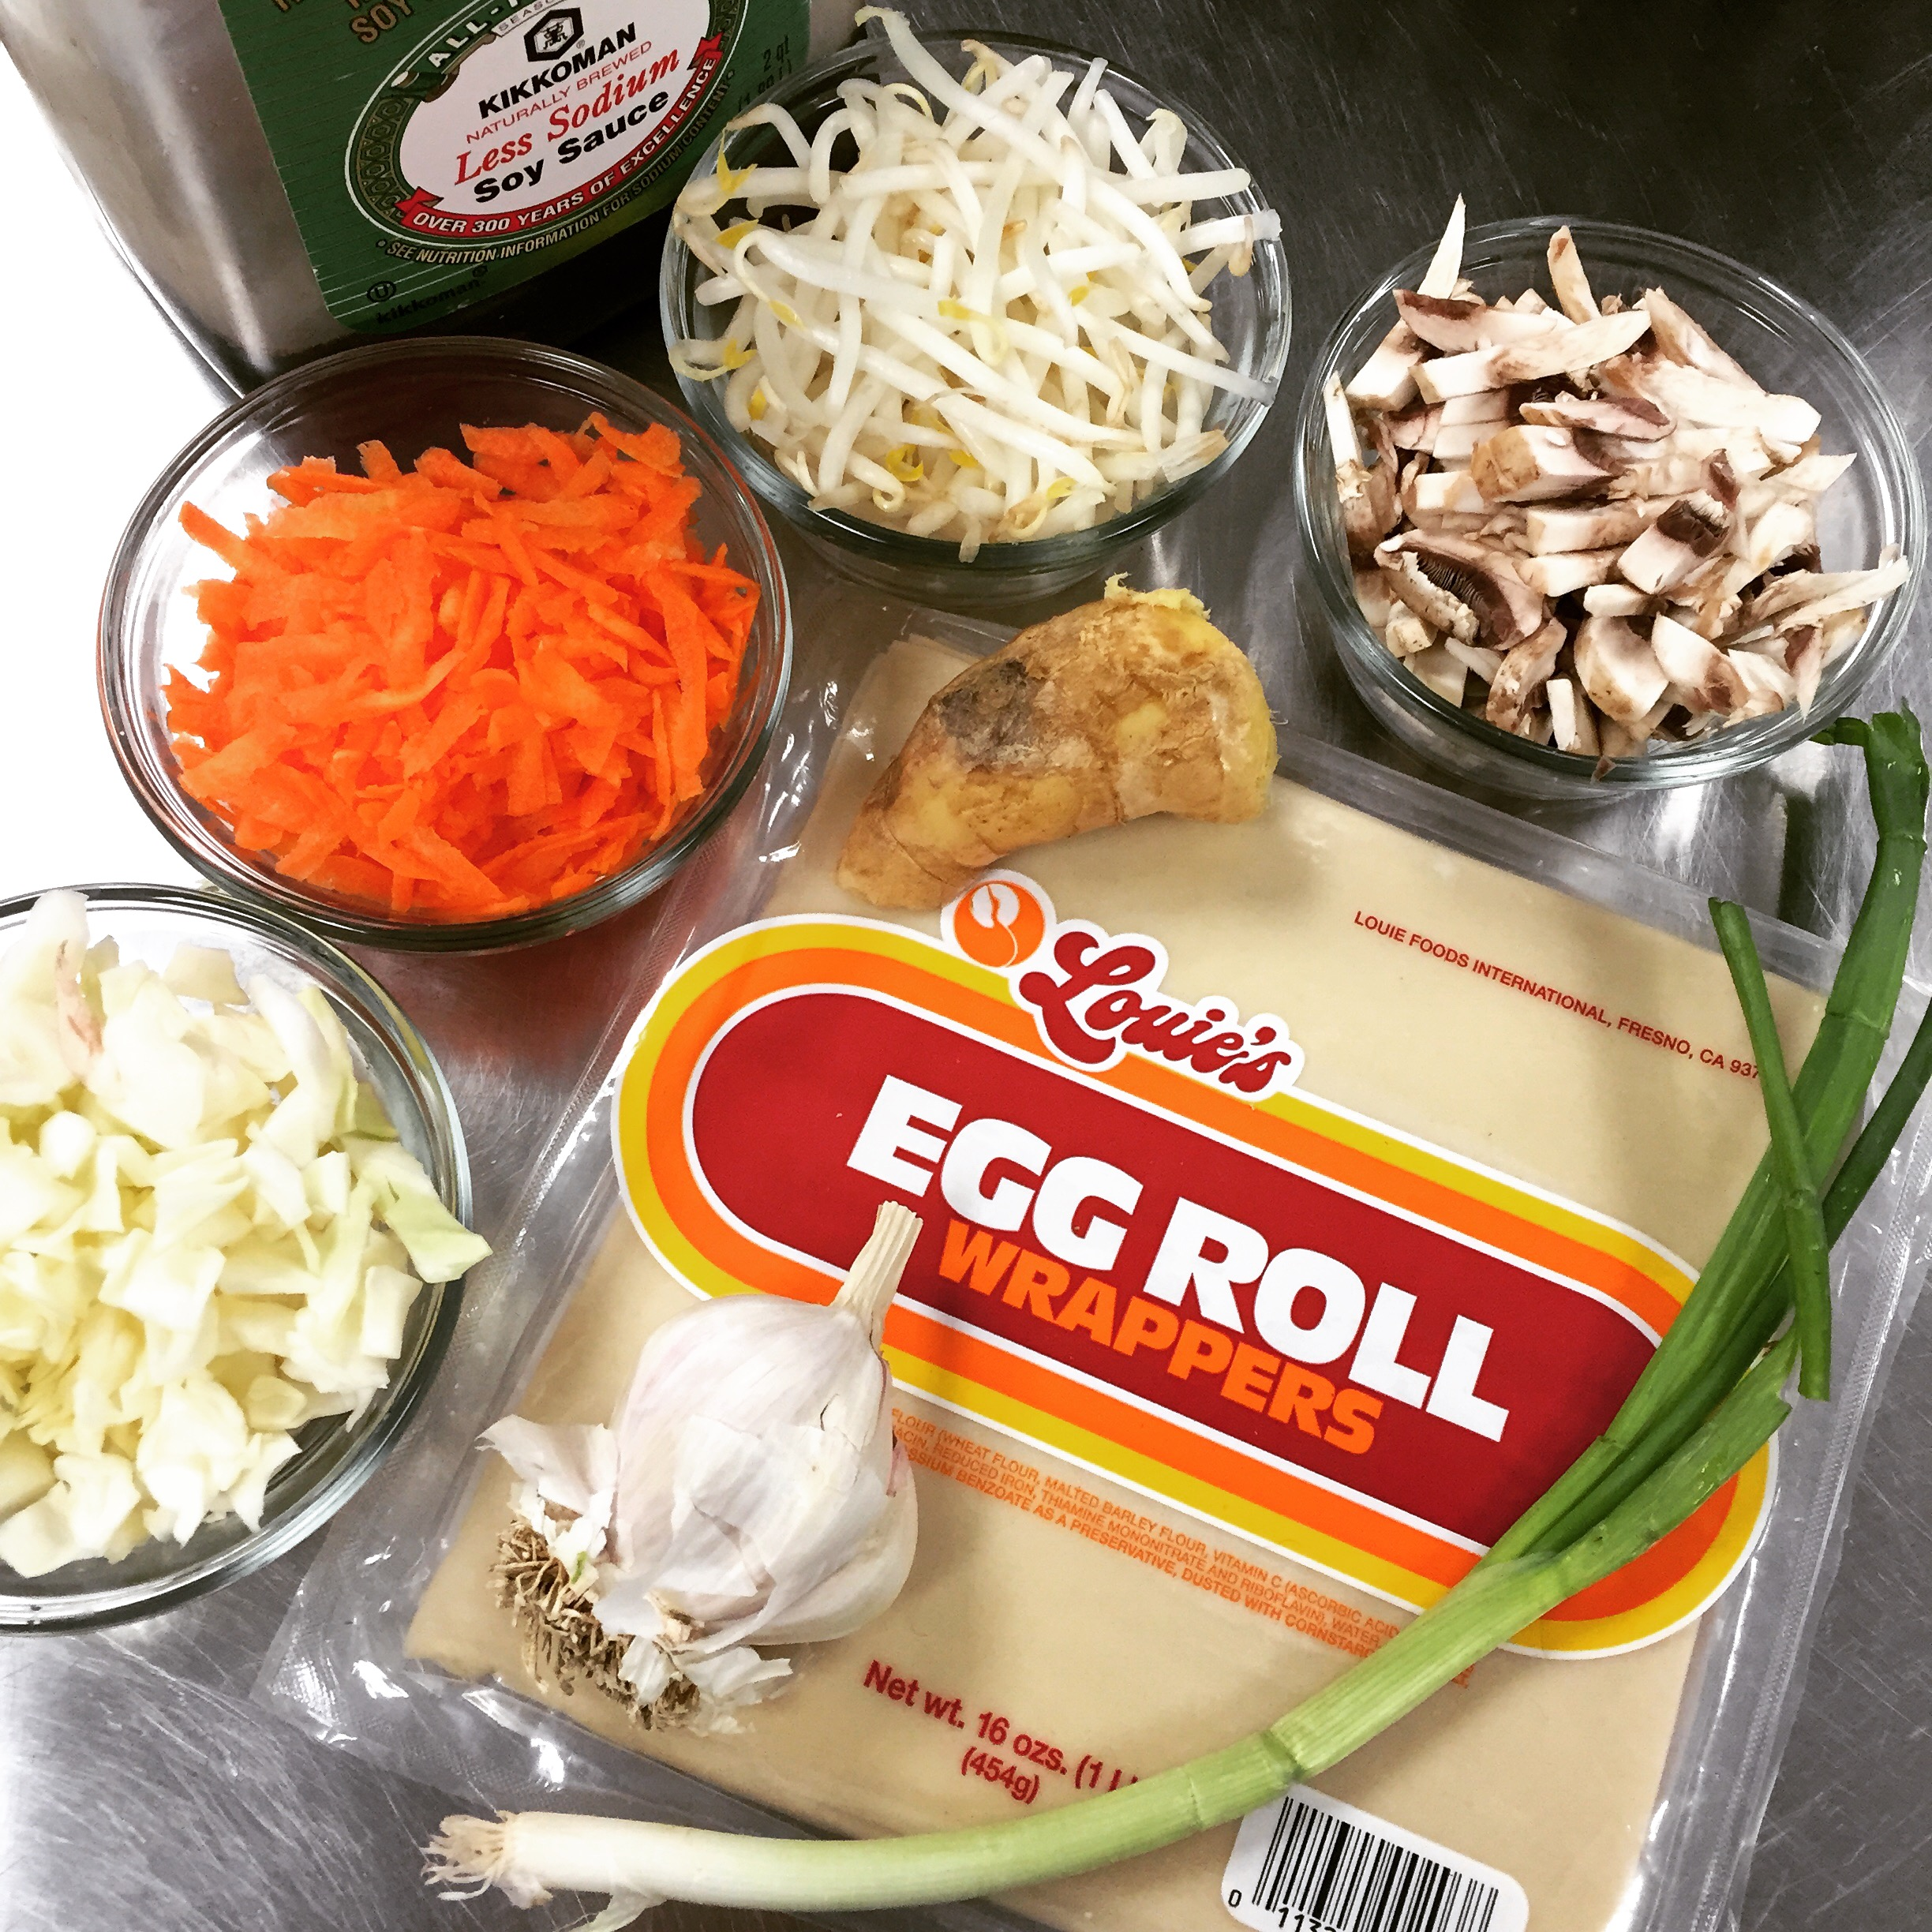 Make veggie spring rolls with your kids! It's fun, easy, & delicious. Step by step guide on www.ChefShayna.com